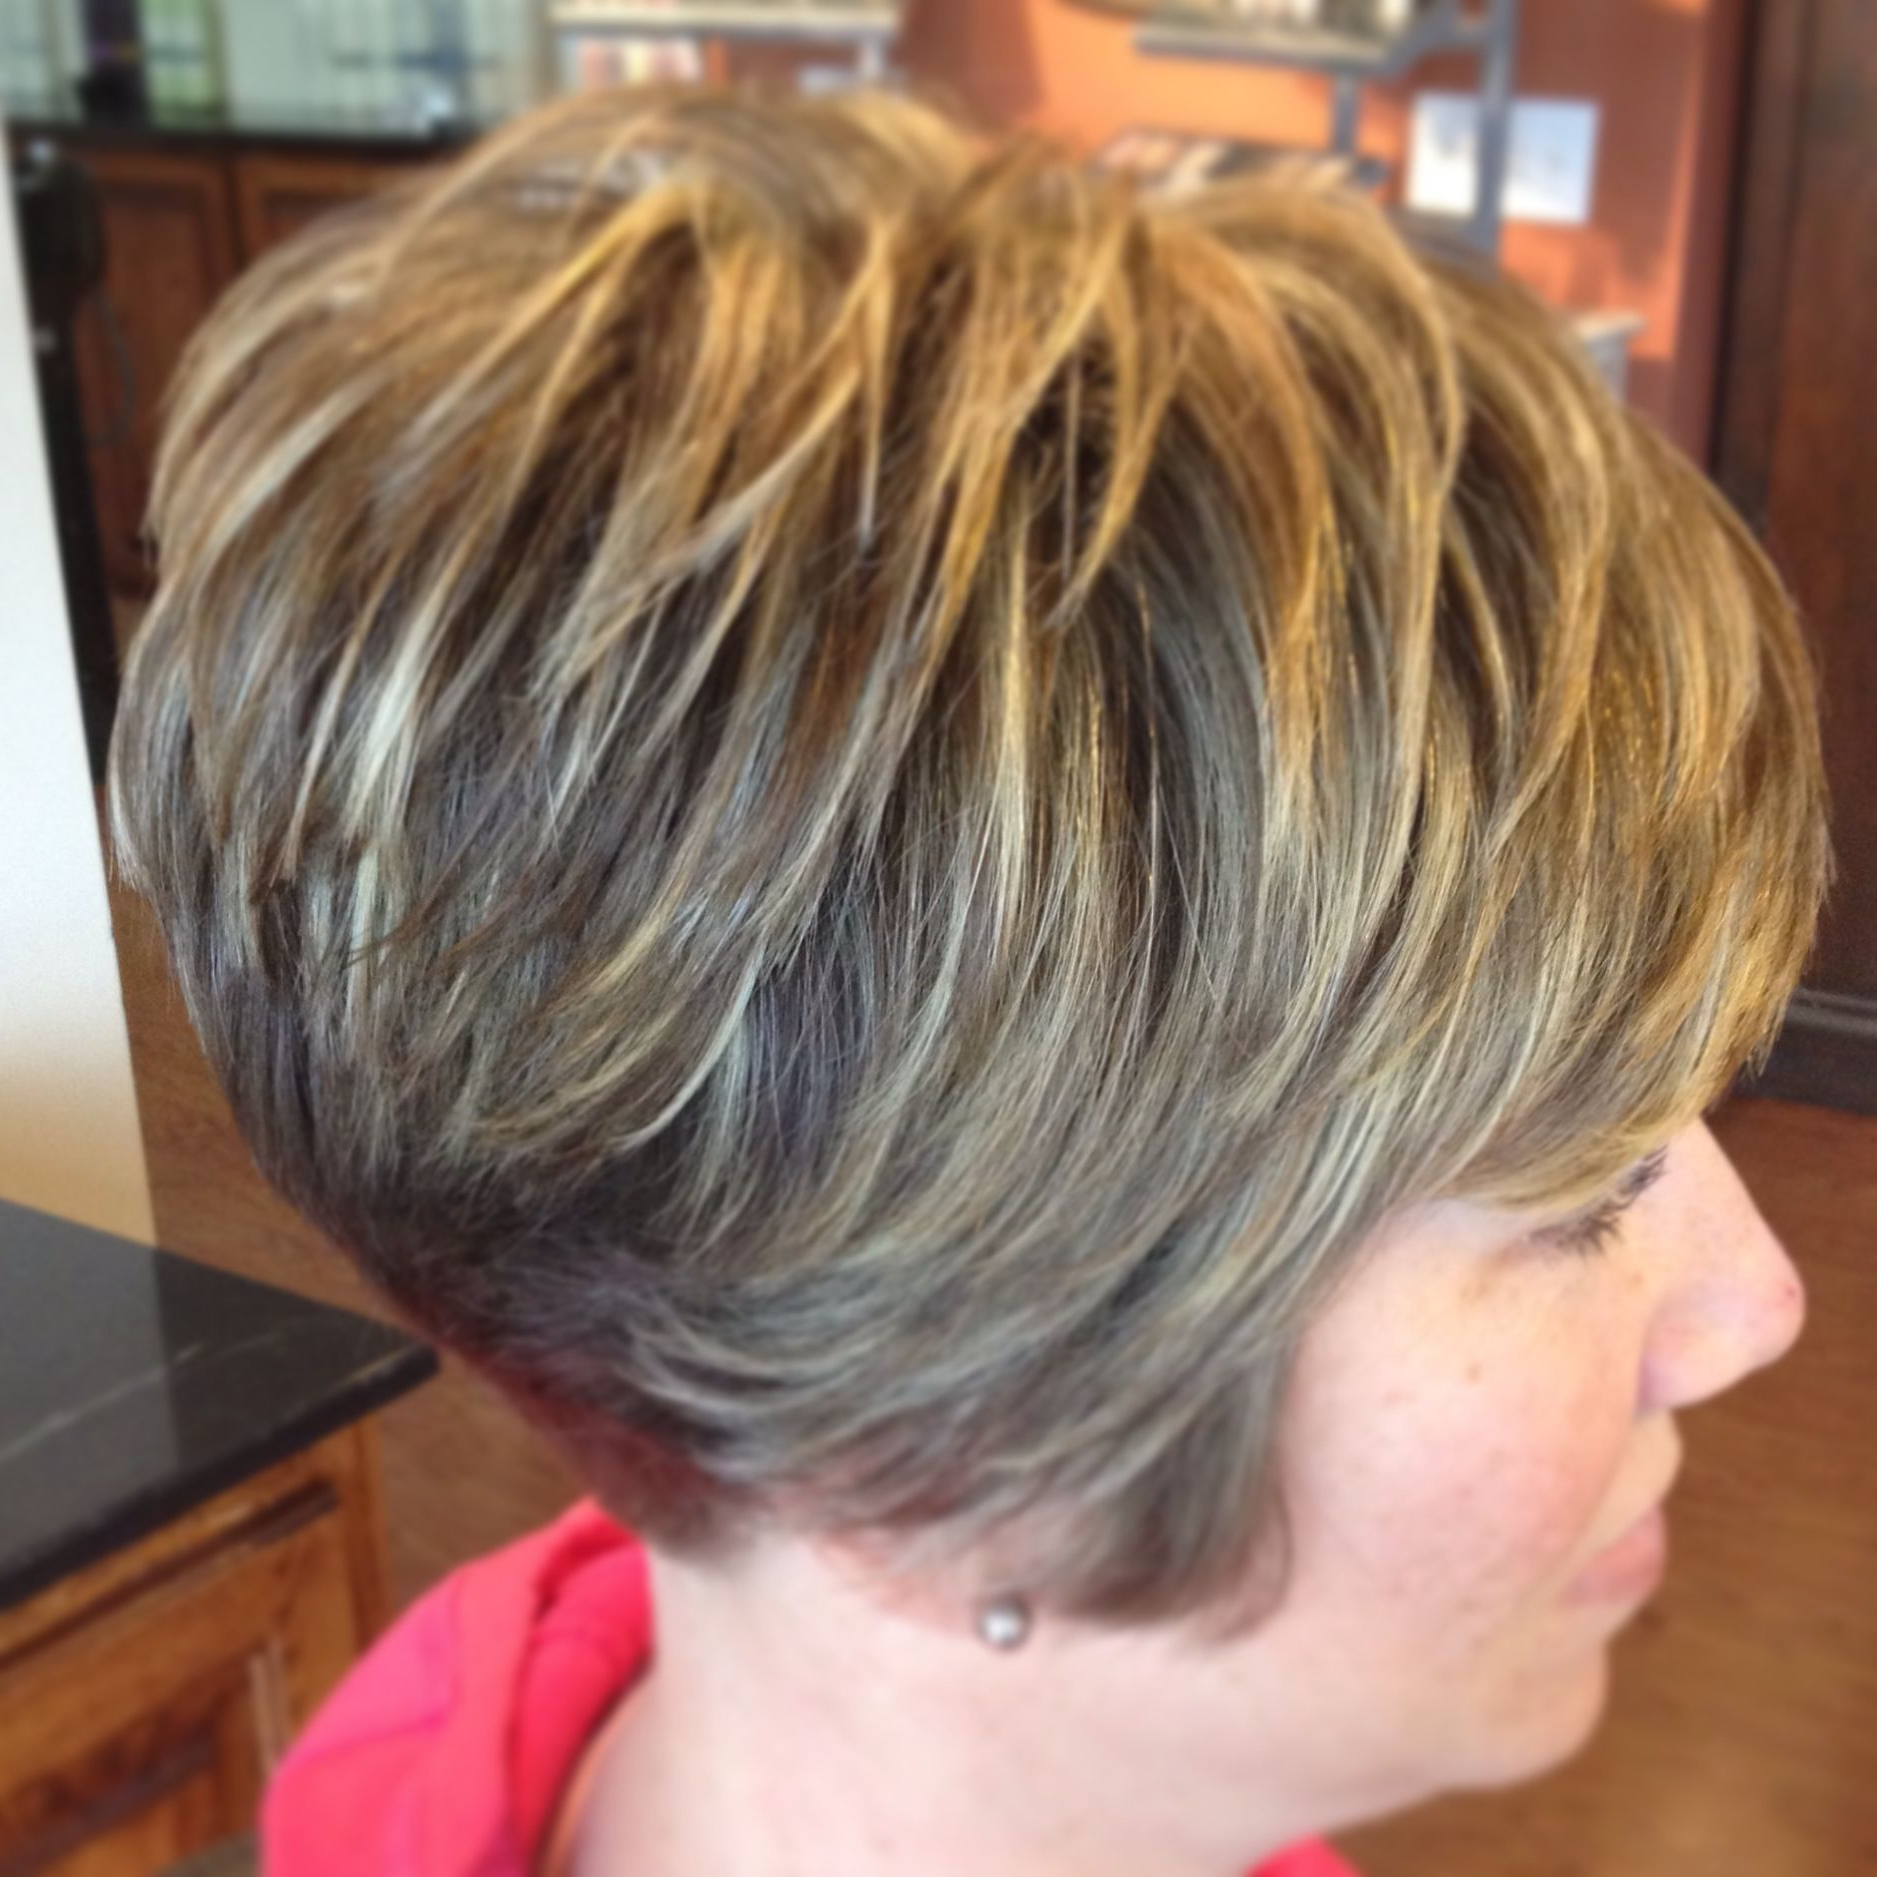 Pin On Designs ~ Short Throughout Short Highlighted Shaggy Haircuts (Gallery 6 of 20)